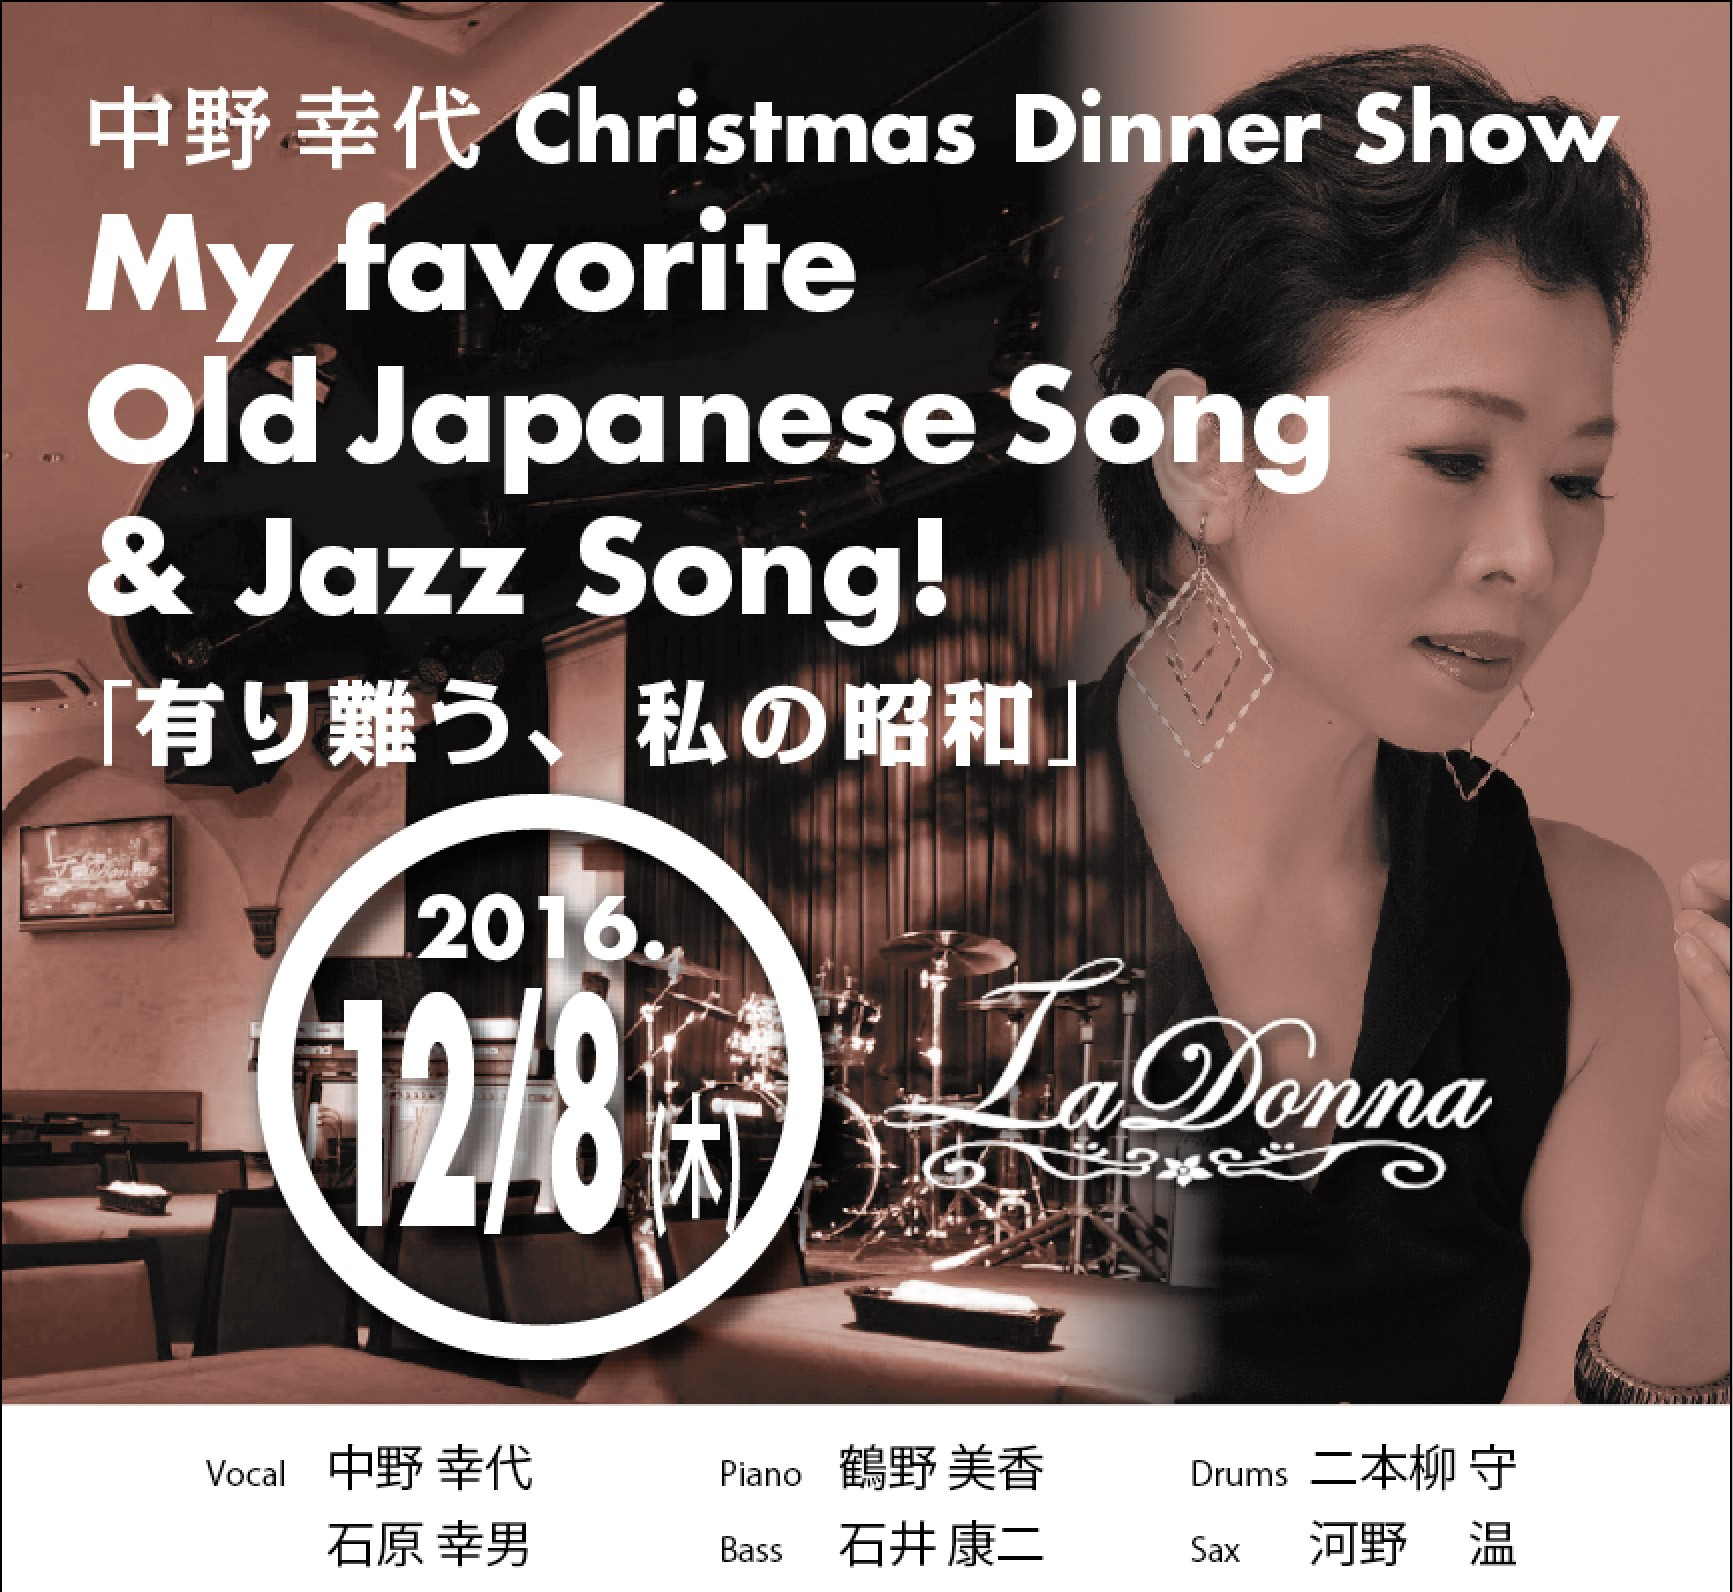 中野幸代Christmas Dinner Show My favorite Old Japanese Song & Jazz Song! 「有り難う、私の昭和」